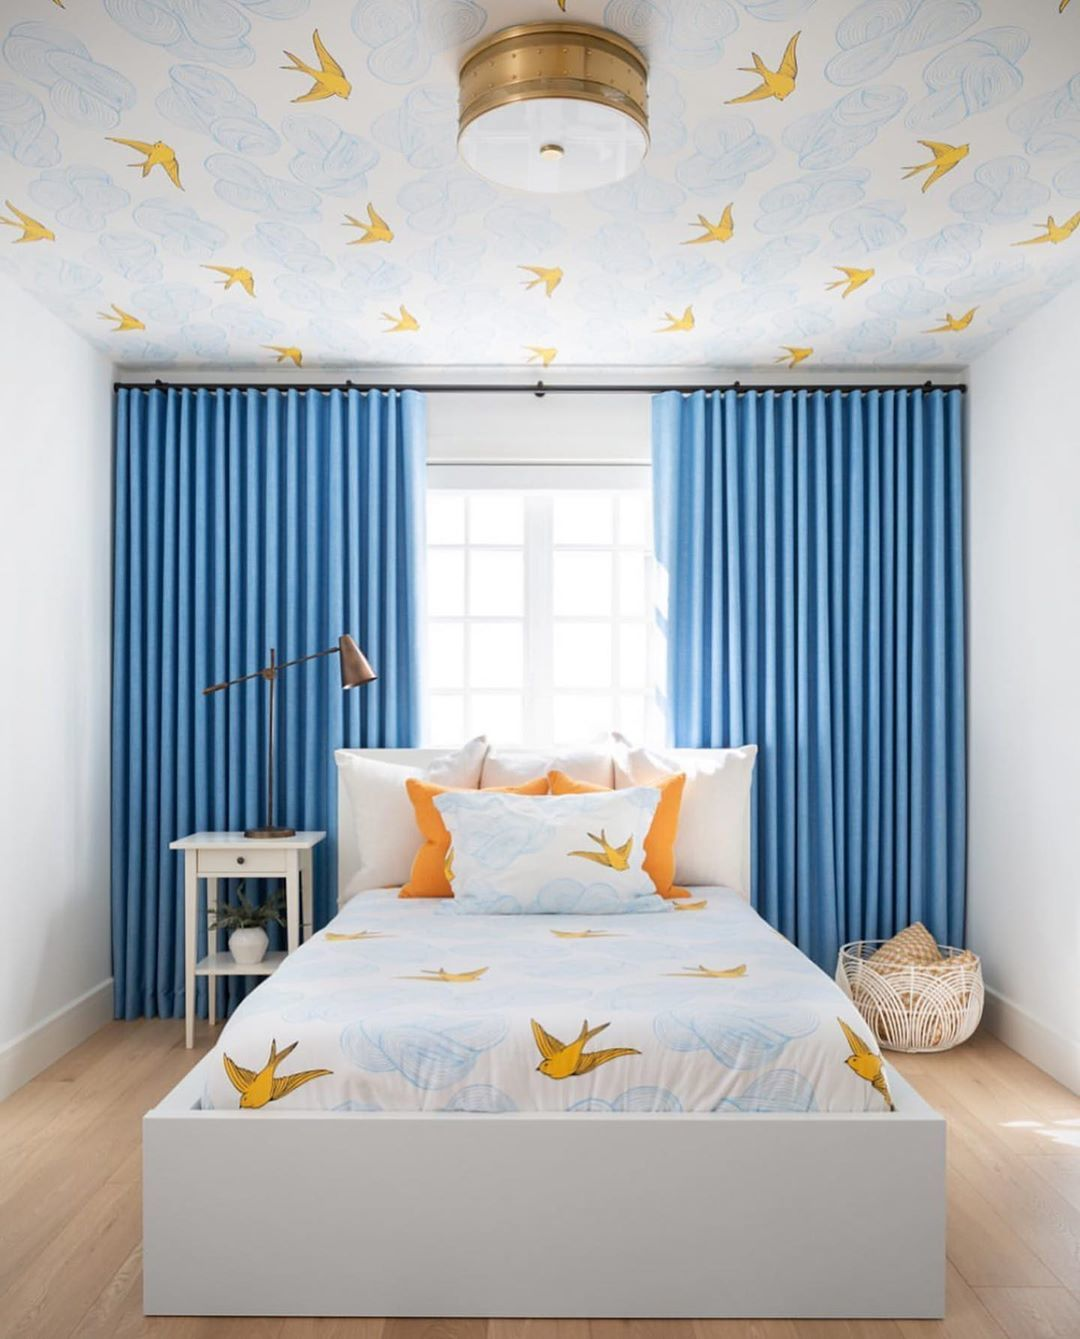 Daydream Sunshine wallpaper and bedding | Julia Rothman | Hygge & West